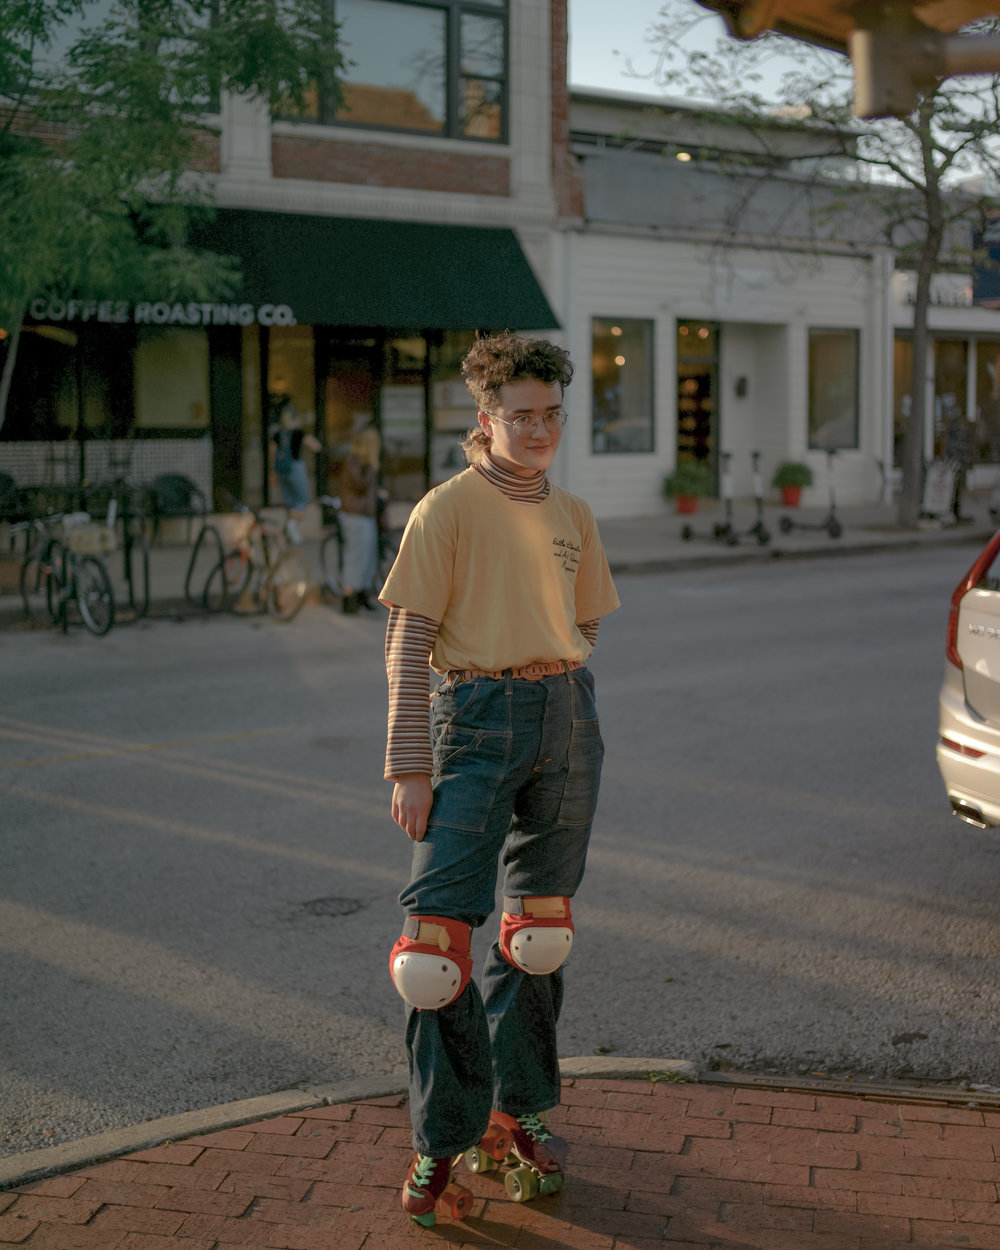 Noah Doolady frequently enjoys skating on the streets of downtown Columbia, Missouri. According to Doolady, these skates in particular are ready for repair or replacement.